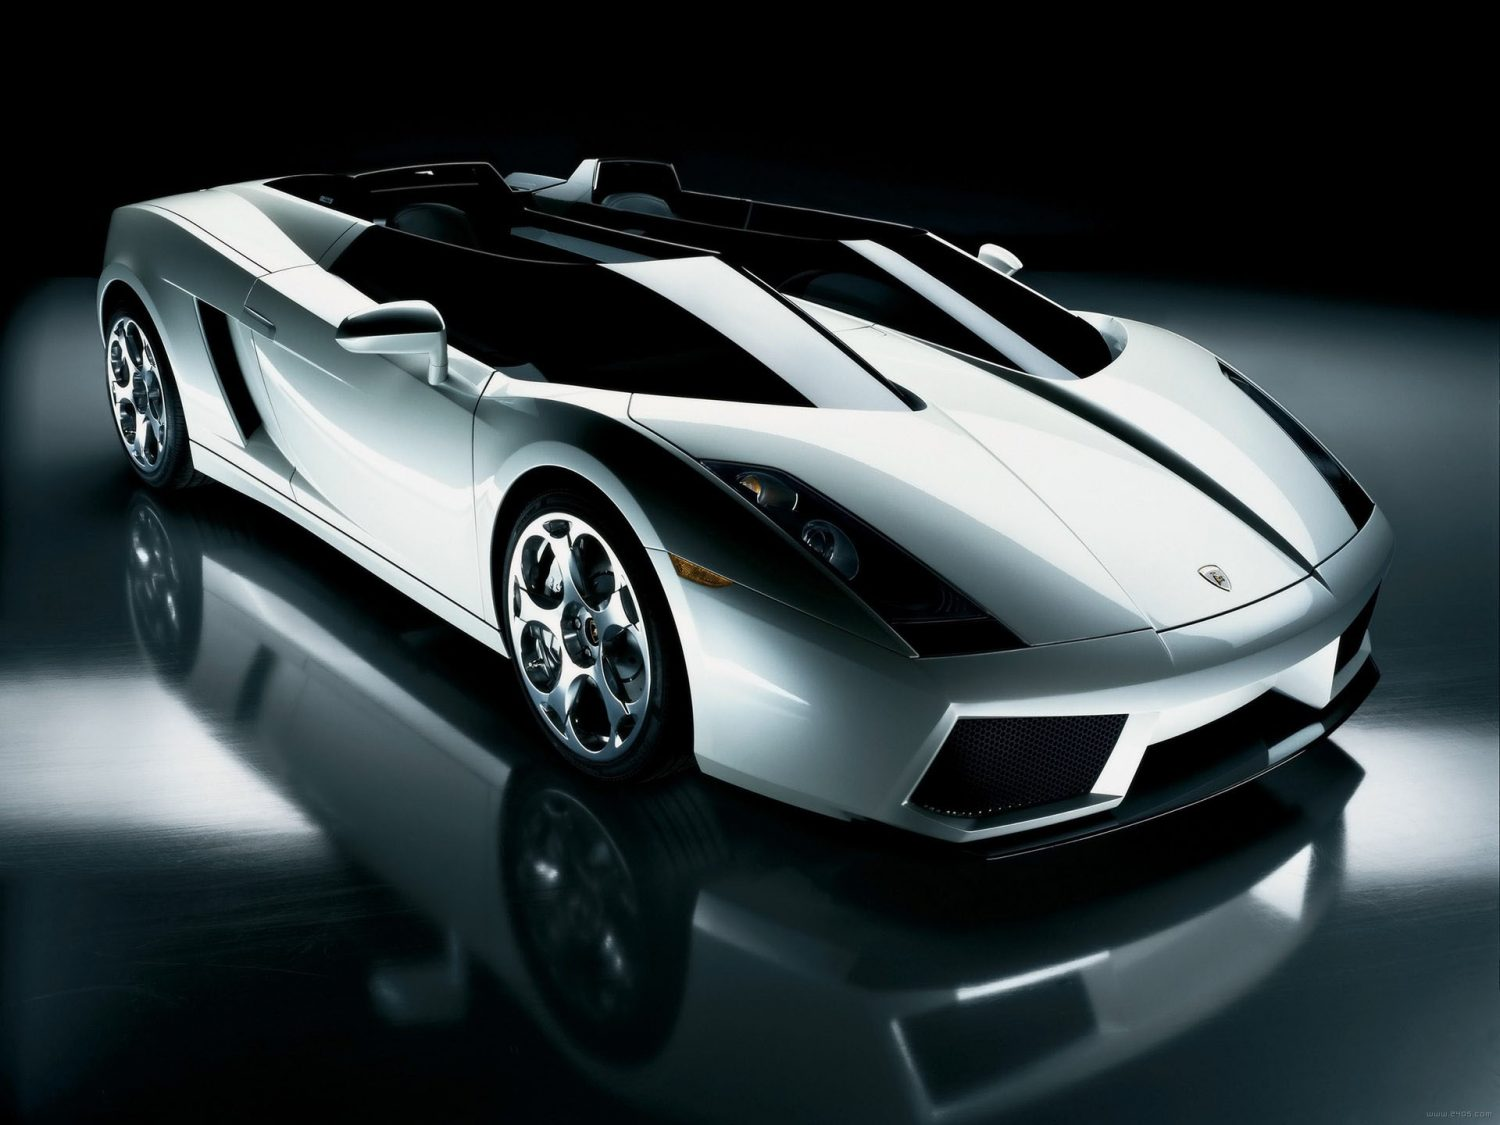 Lamborghini Super Car Resembles Futuristic Jet Fighter